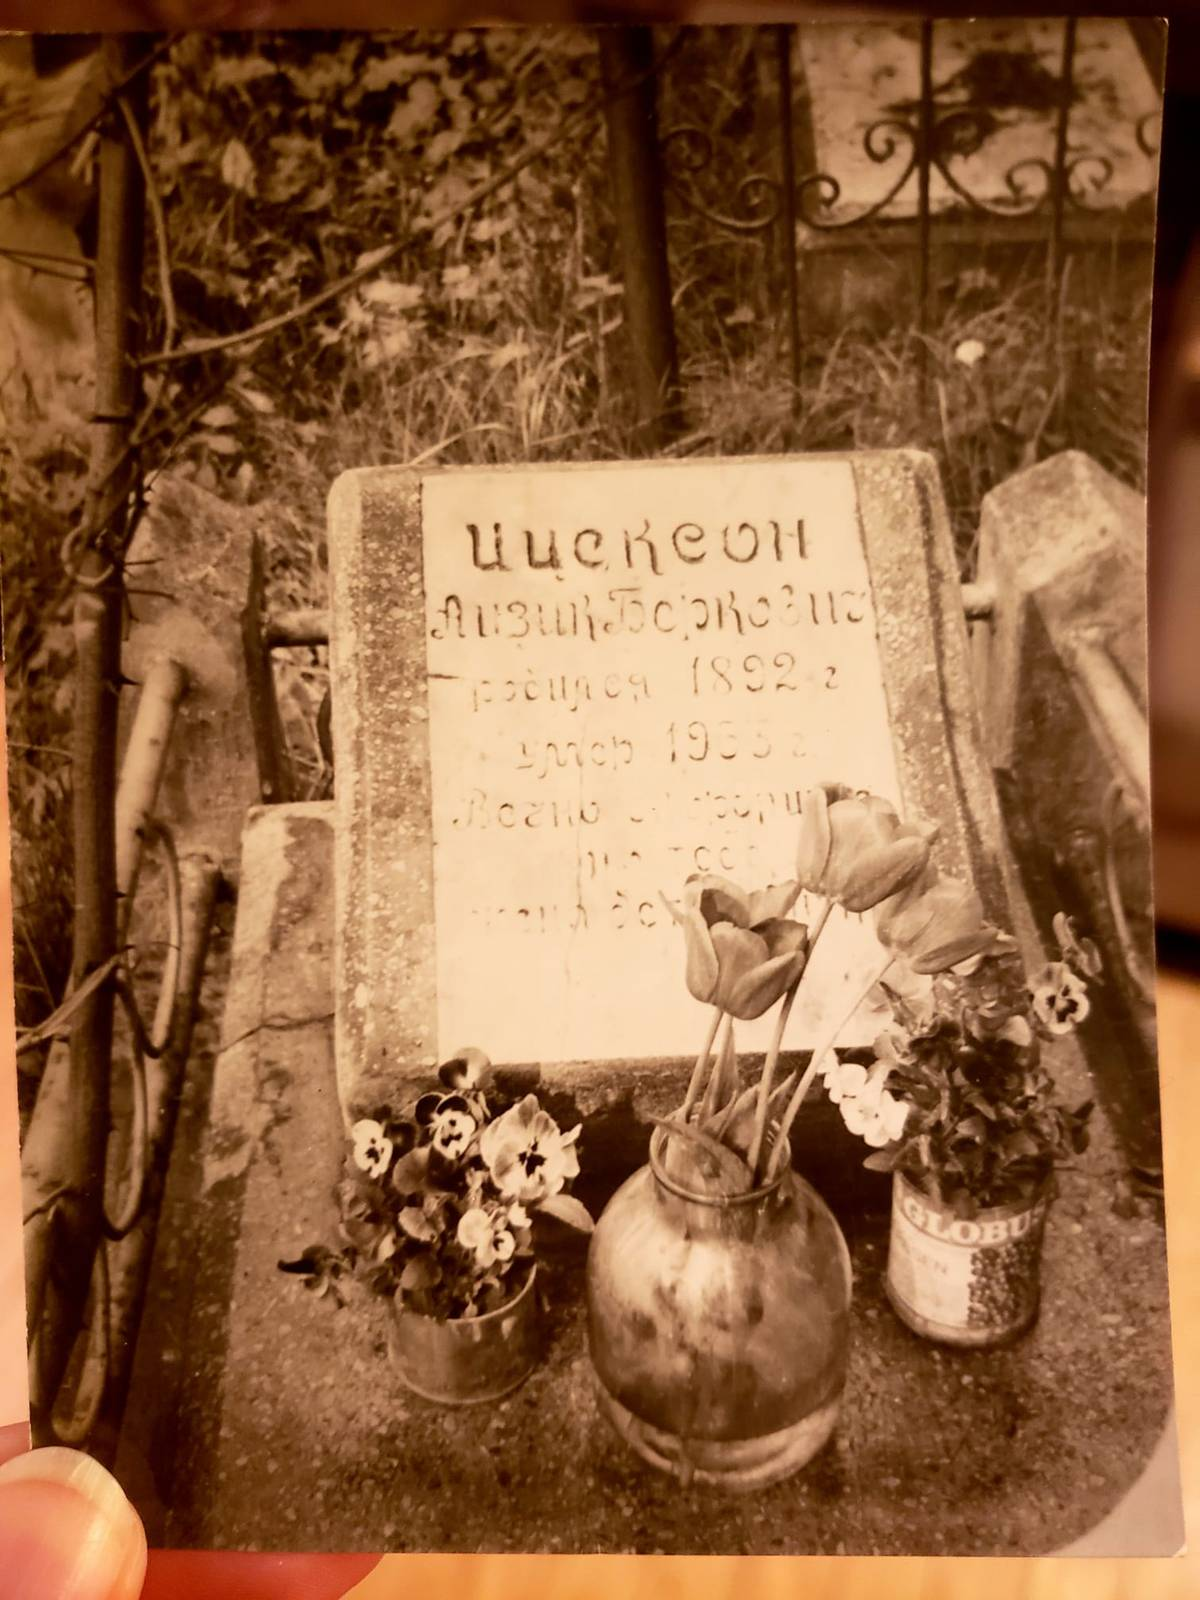 The photo of Itsik's grave